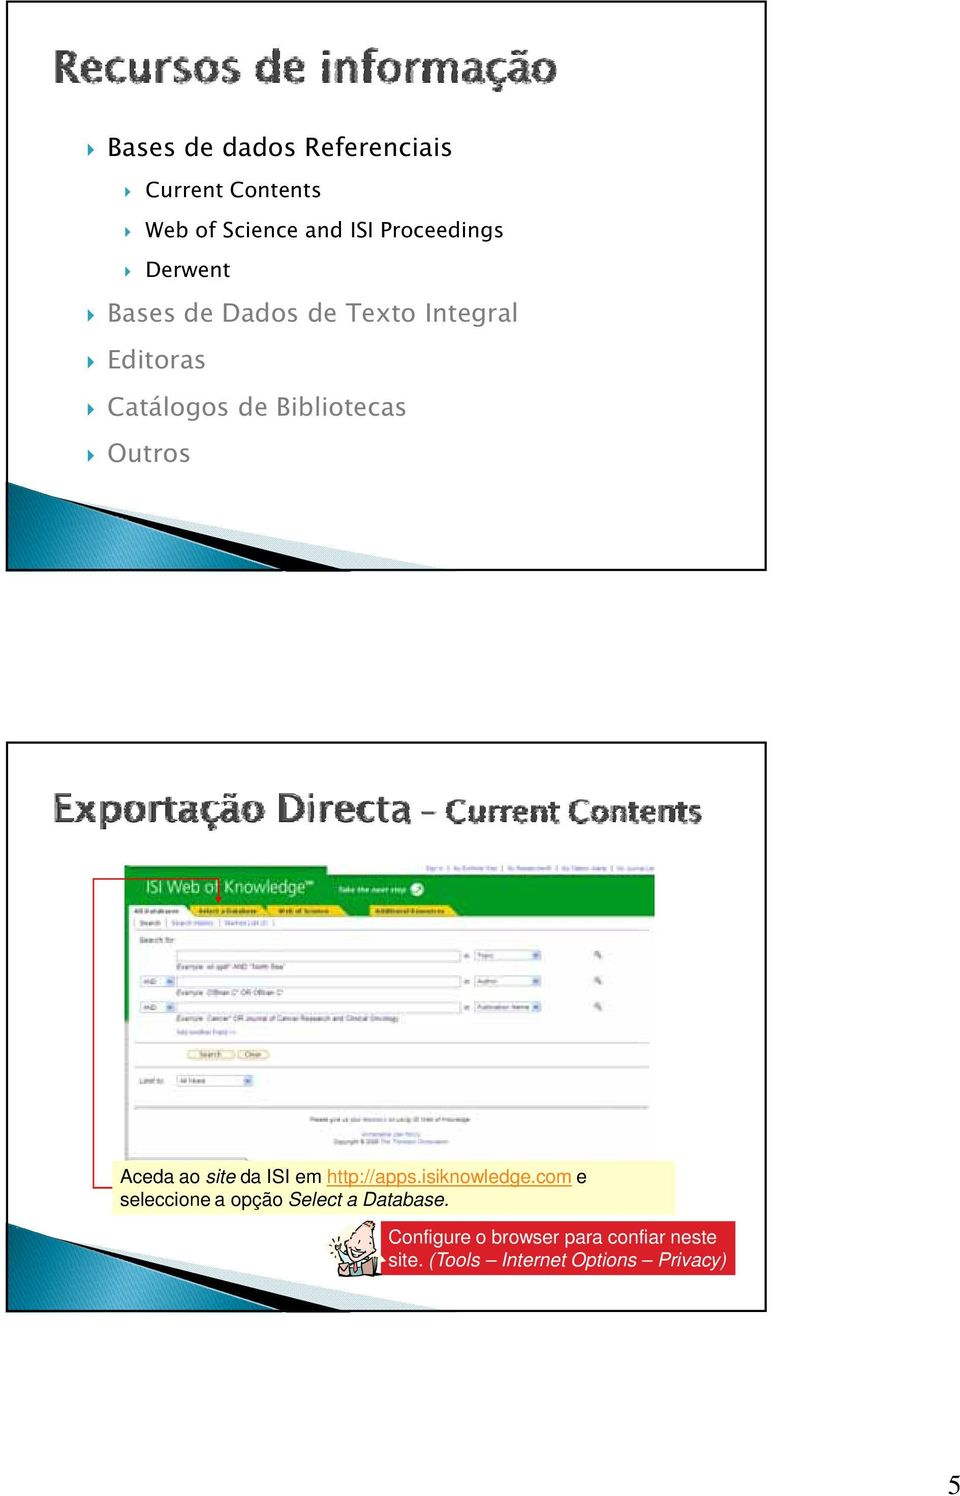 Aceda ao site da ISI em http://apps.isiknowledge.